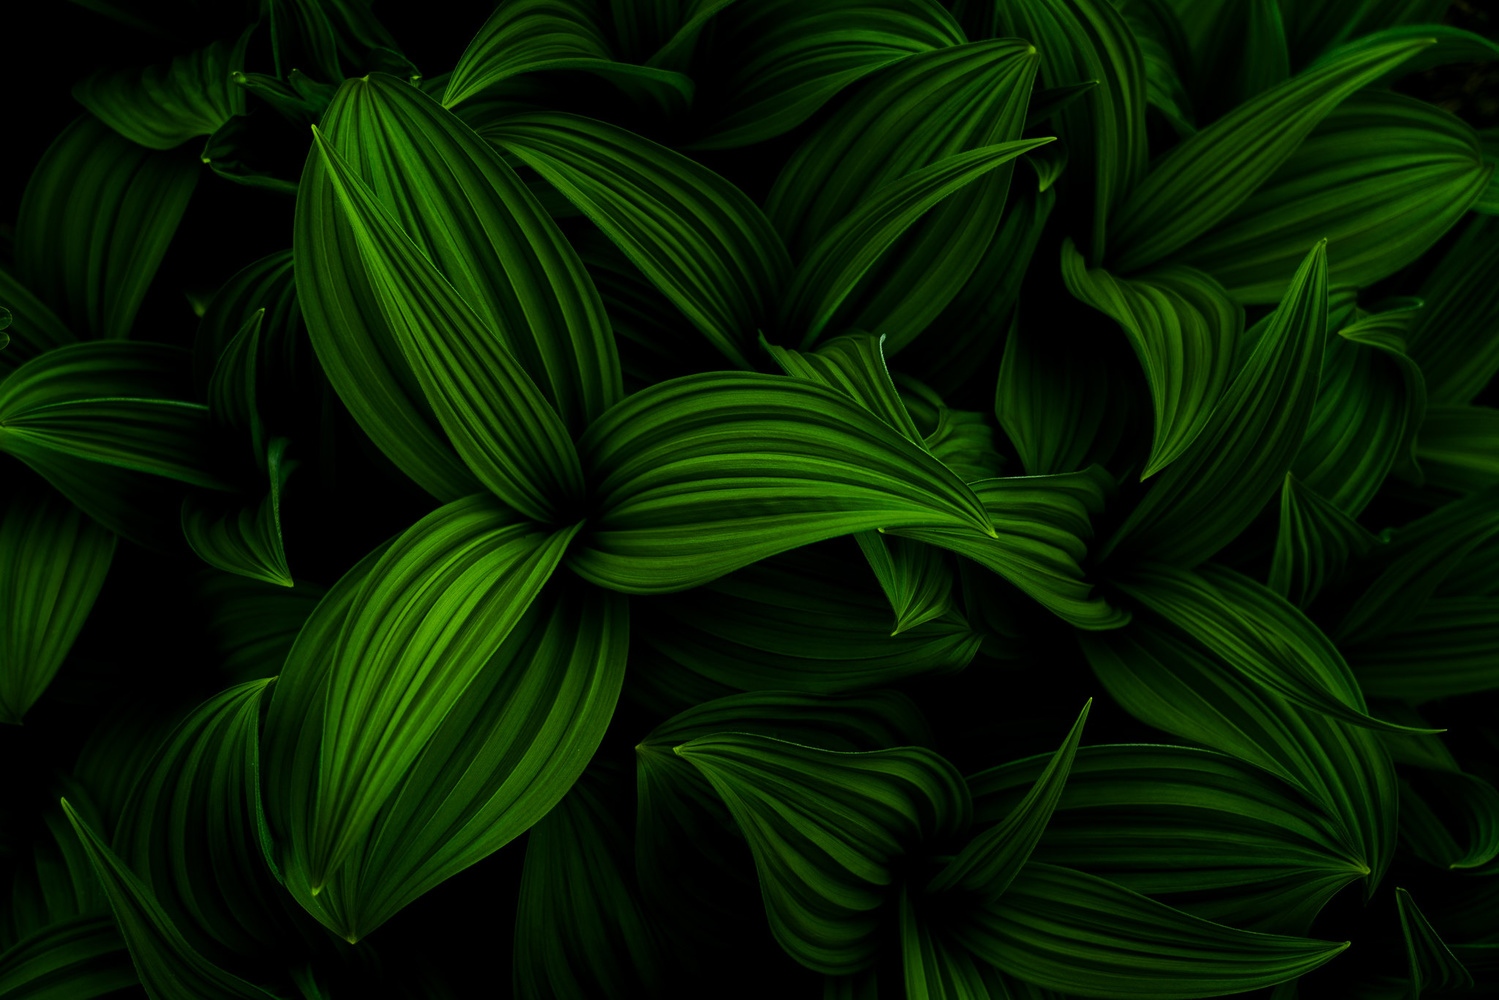 Wild Plants by TYLER YATES